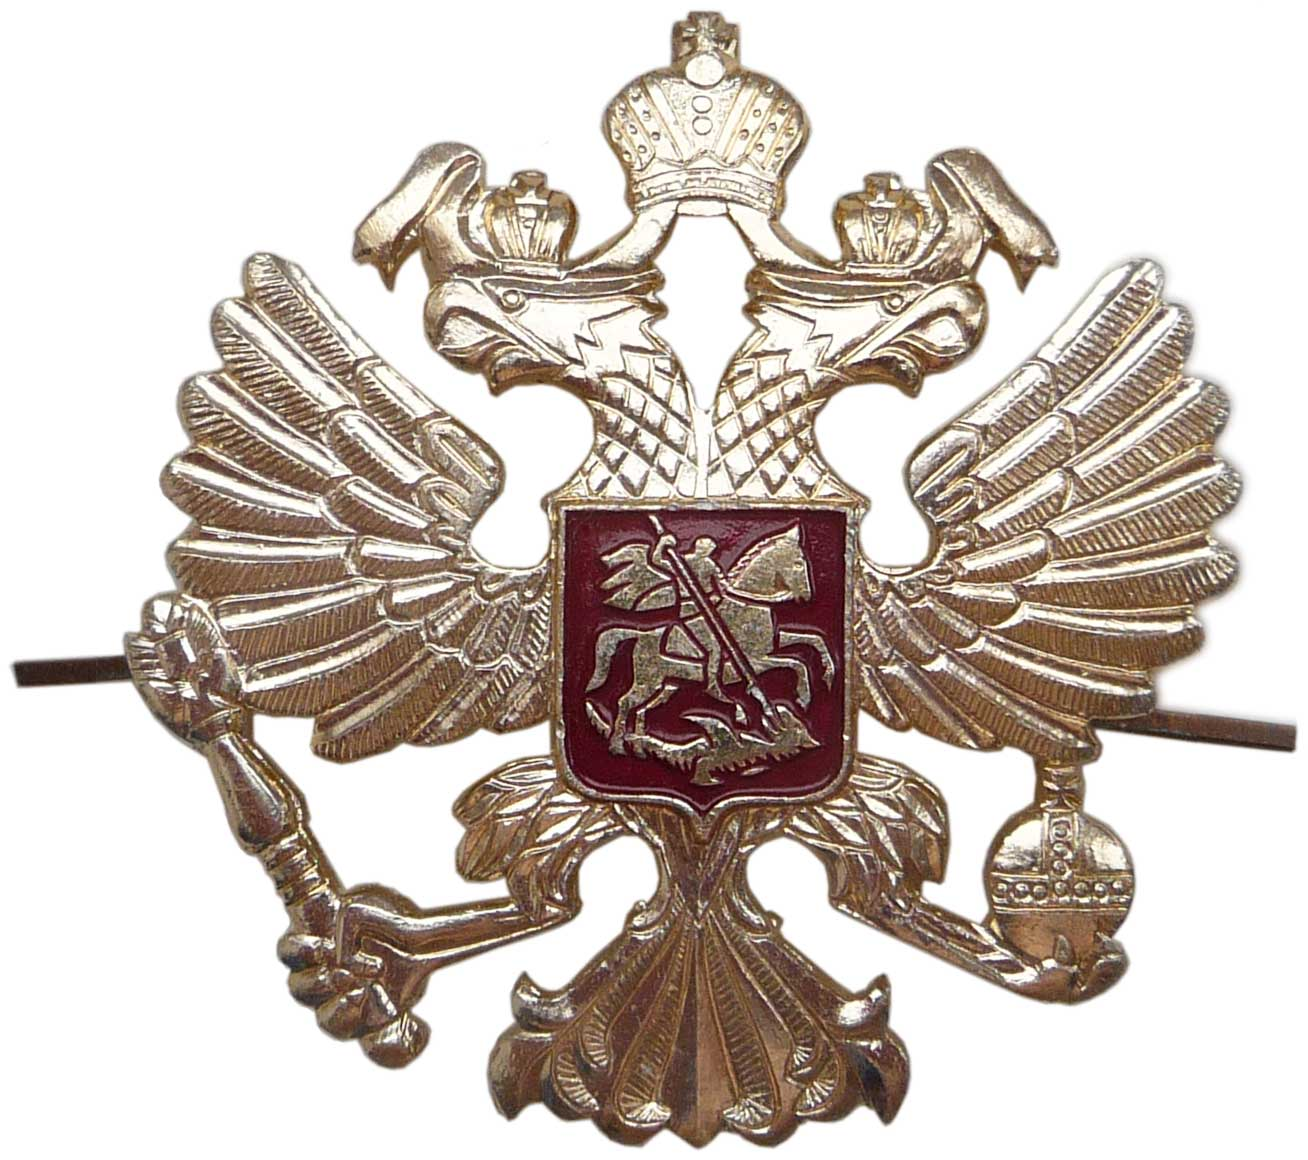 If you would like us to inform Russian Imperial Eagle